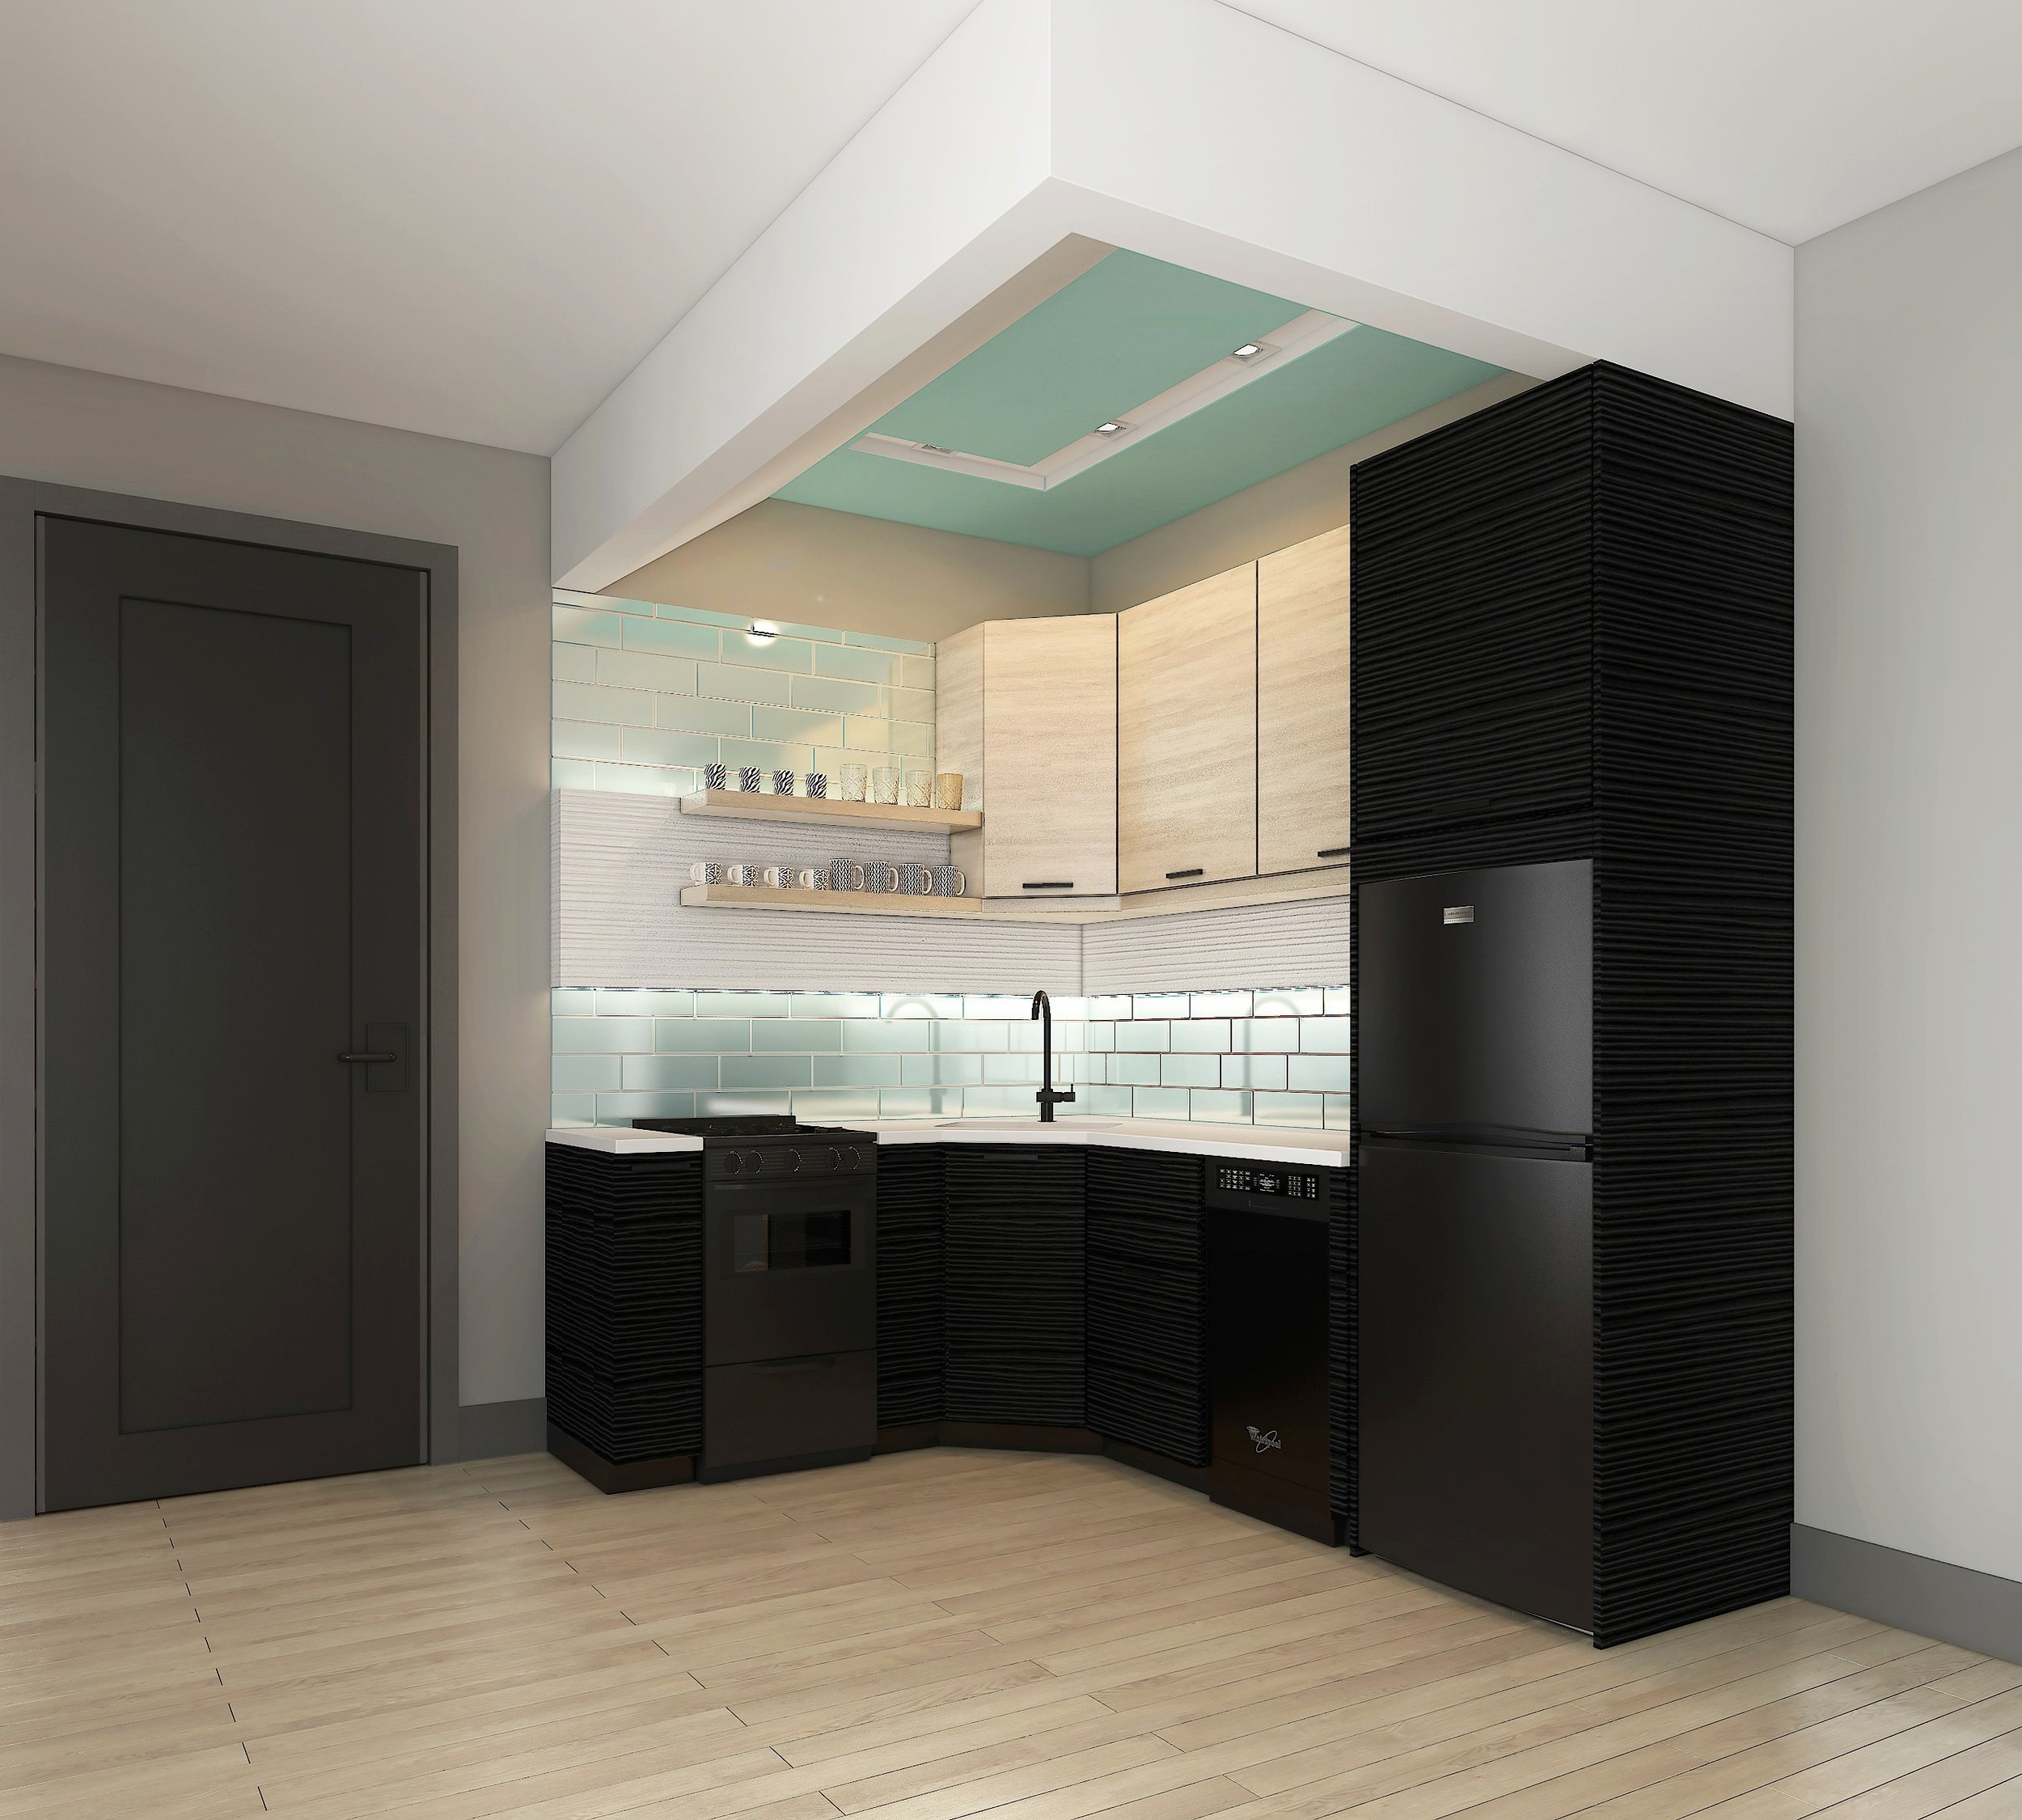 675_Grand_Street_Kitchen_Rendering_2016.03.04.jpg